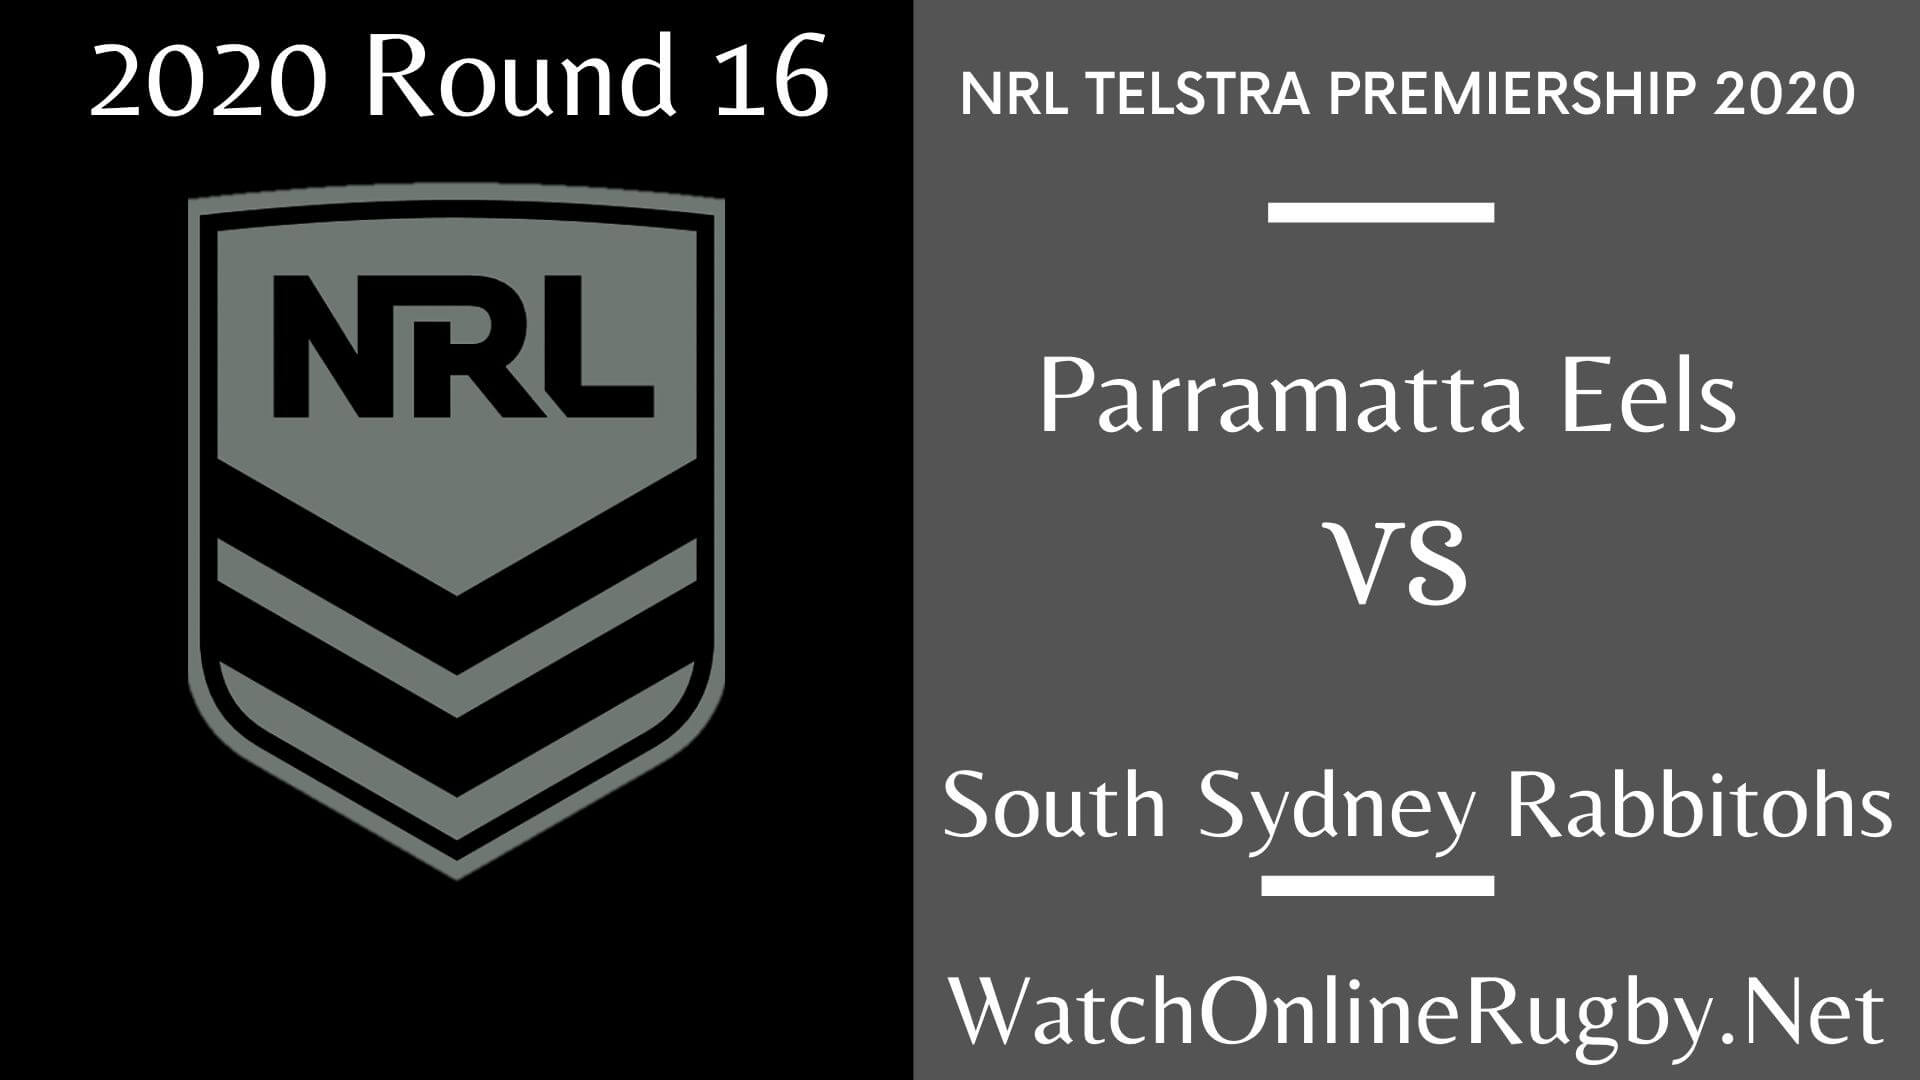 Eels Vs Rabbitohs Highlights 2020 Rd 16 NRL Rugby